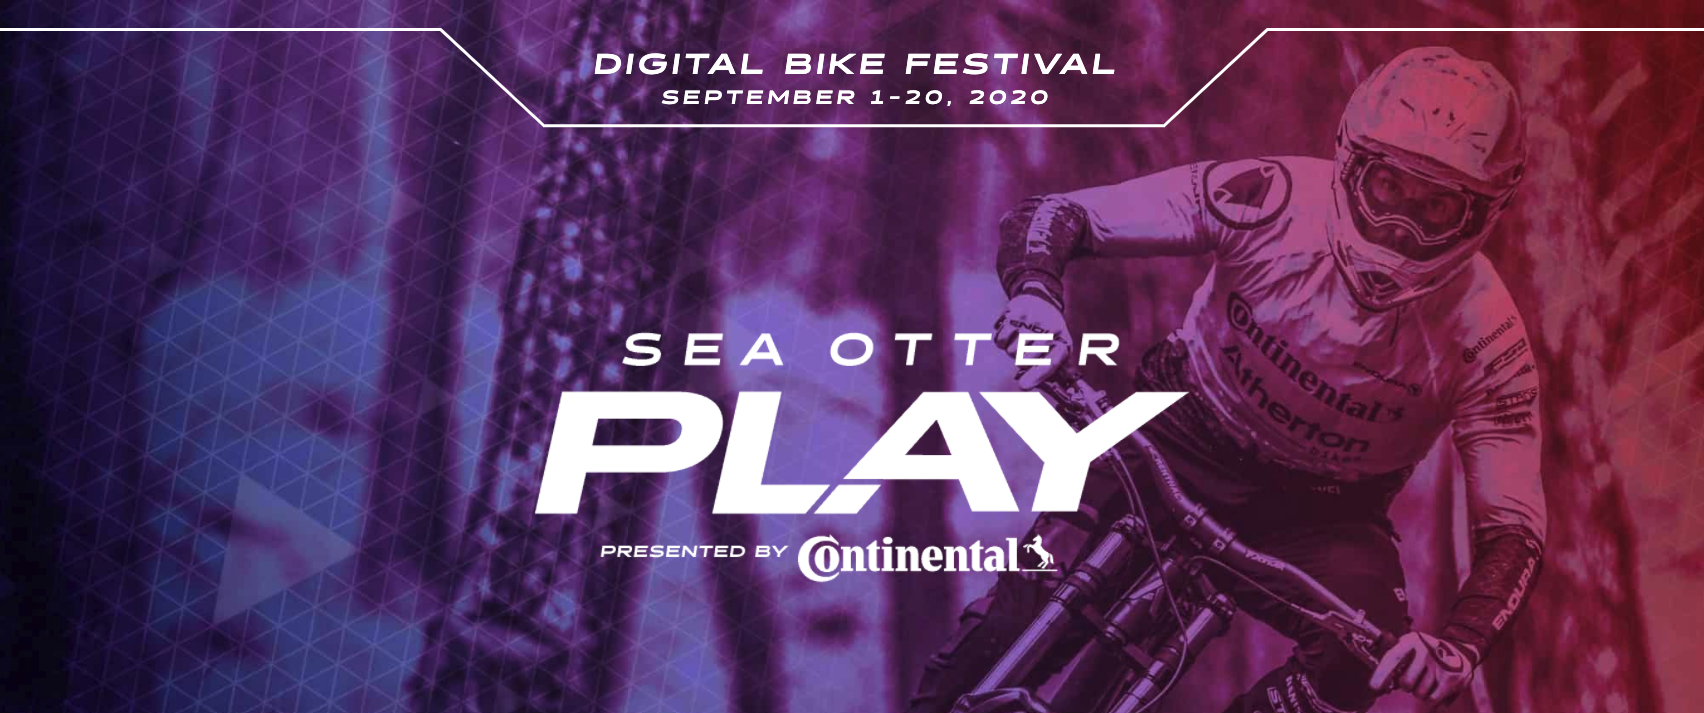 In place of the in-person event, Sea Otter organizers have launched Sea Otter Play